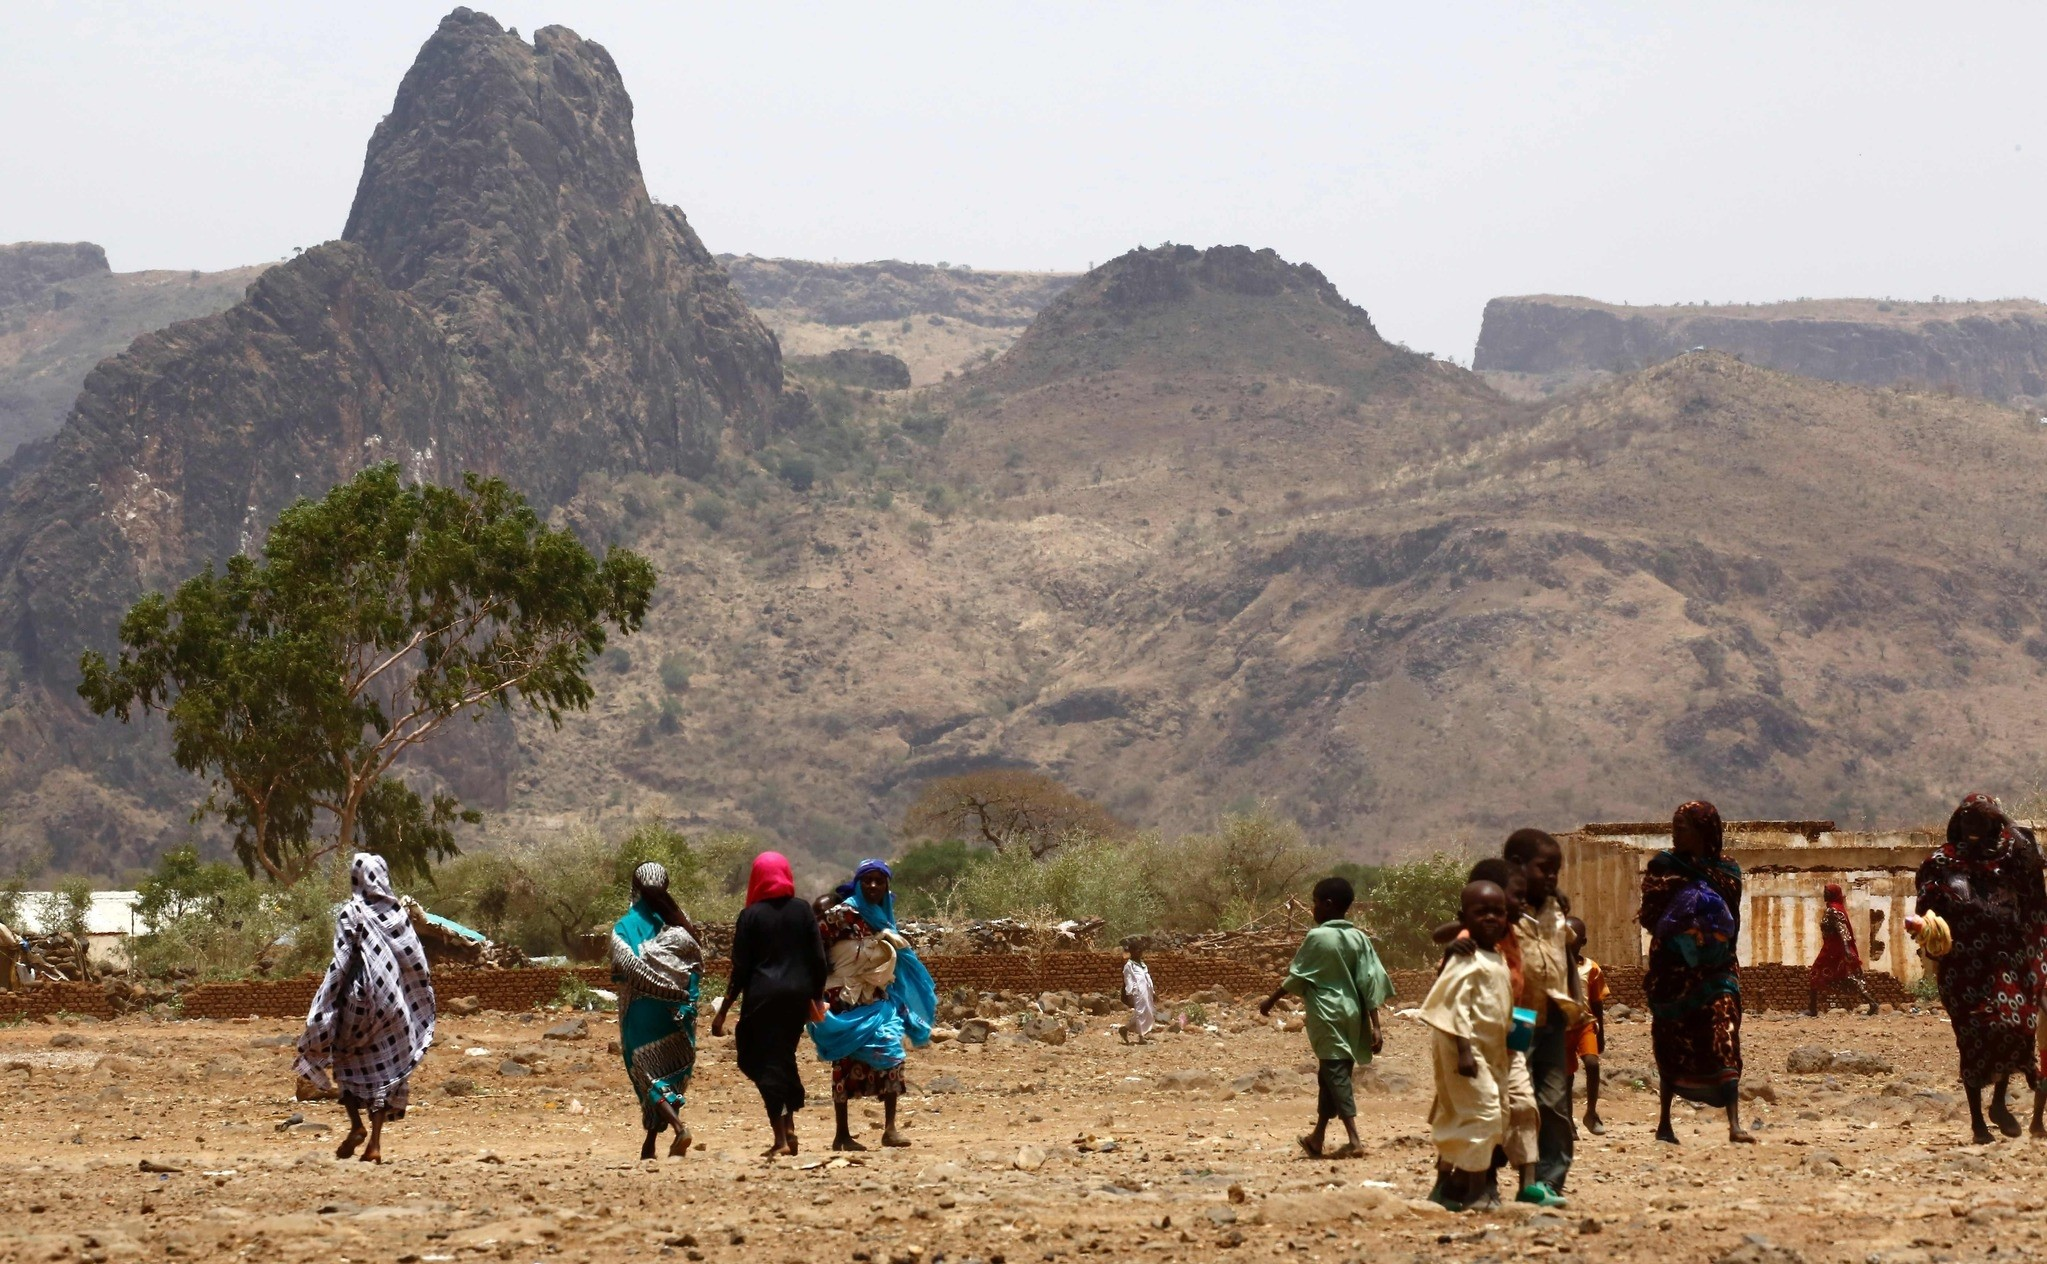 Sudanese villagers walk in the war-torn town of Golo in the thickly forested mountainous area of Jebel Marra in central Darfur on June 19, 2017. (AFP PHOTO)